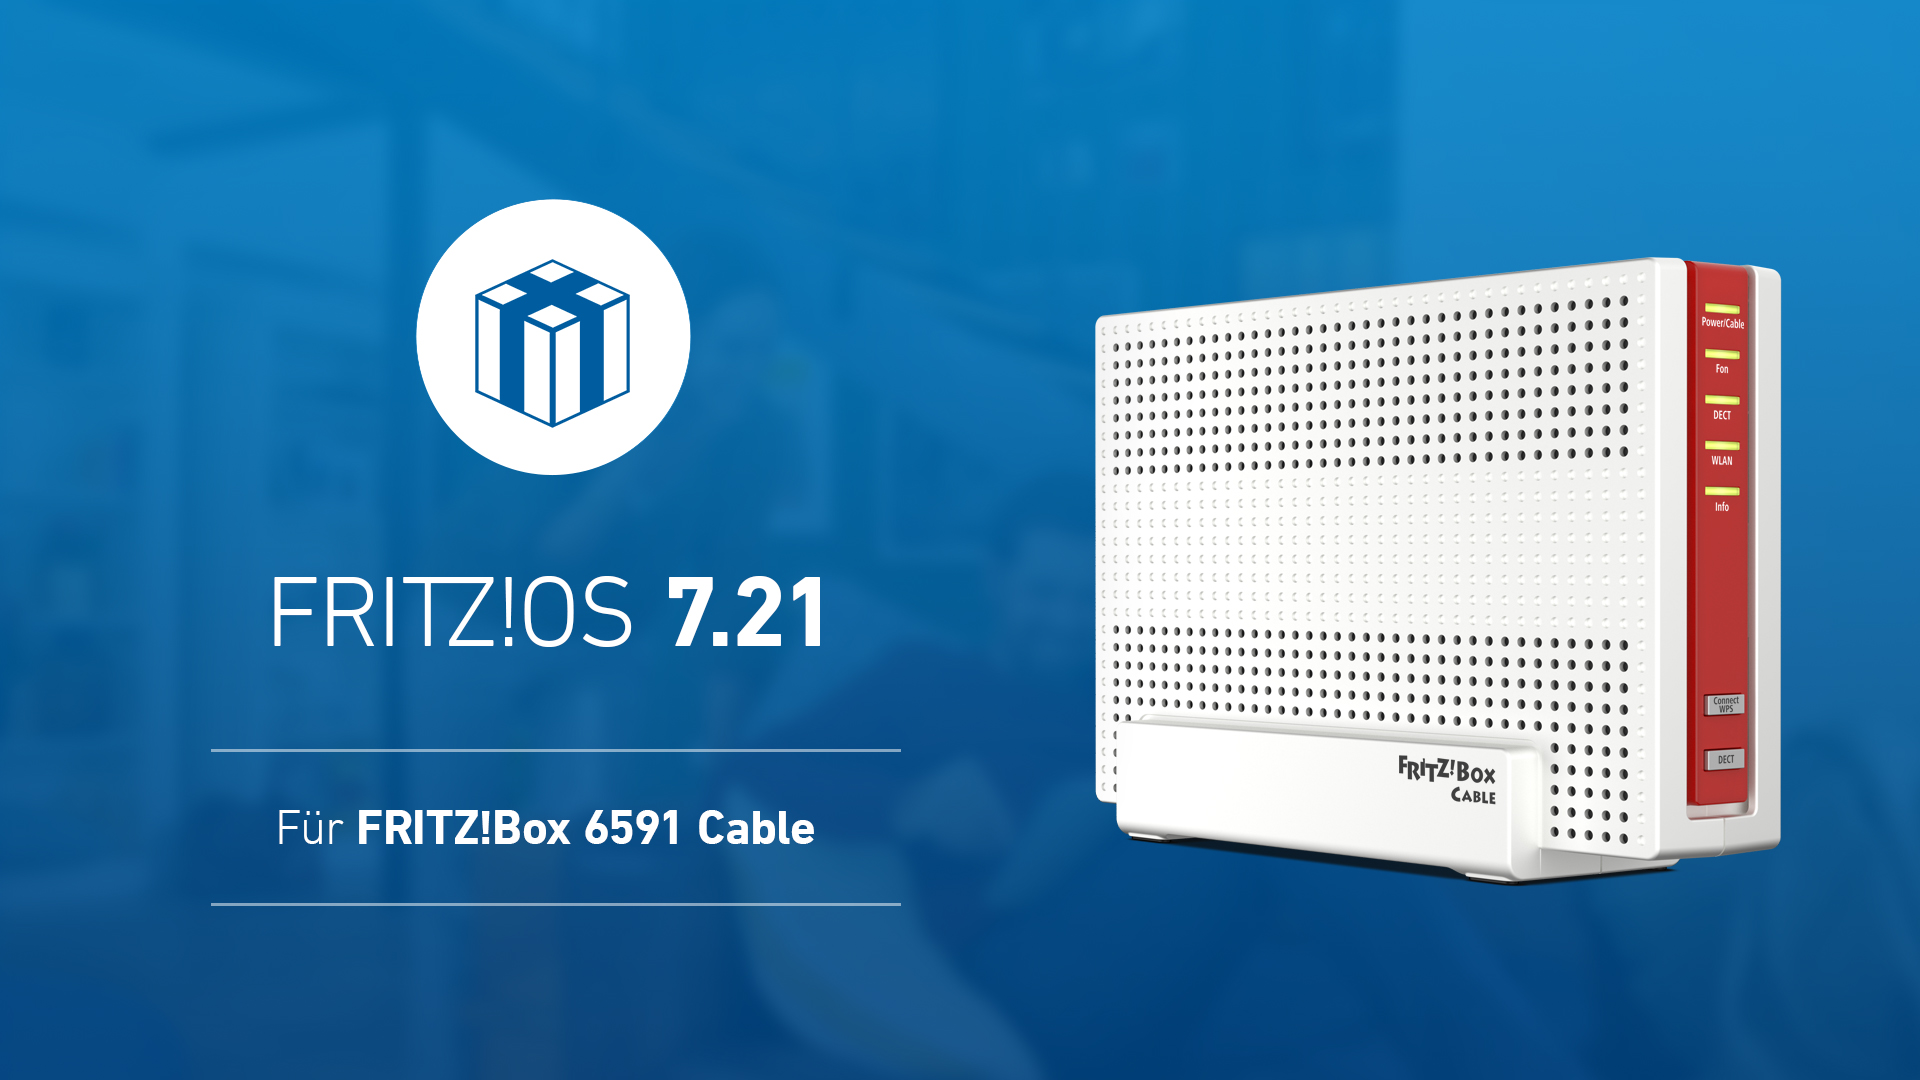 Tele Columbus/Pyur: Fritzbox Updates für FRITZ!Box 6490 Cable und 6591 Cable